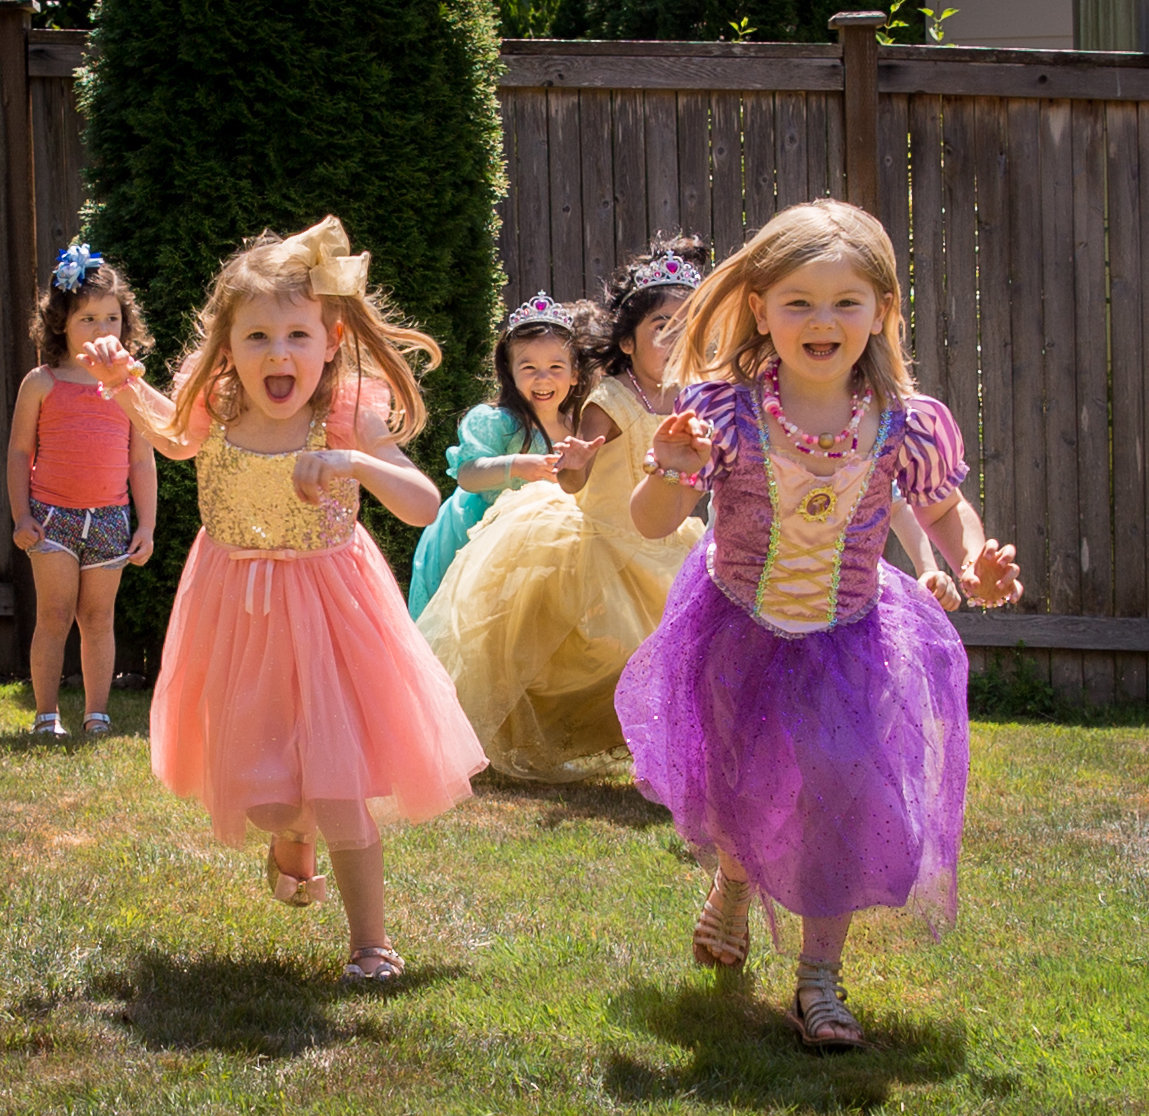 Princesses Running crop